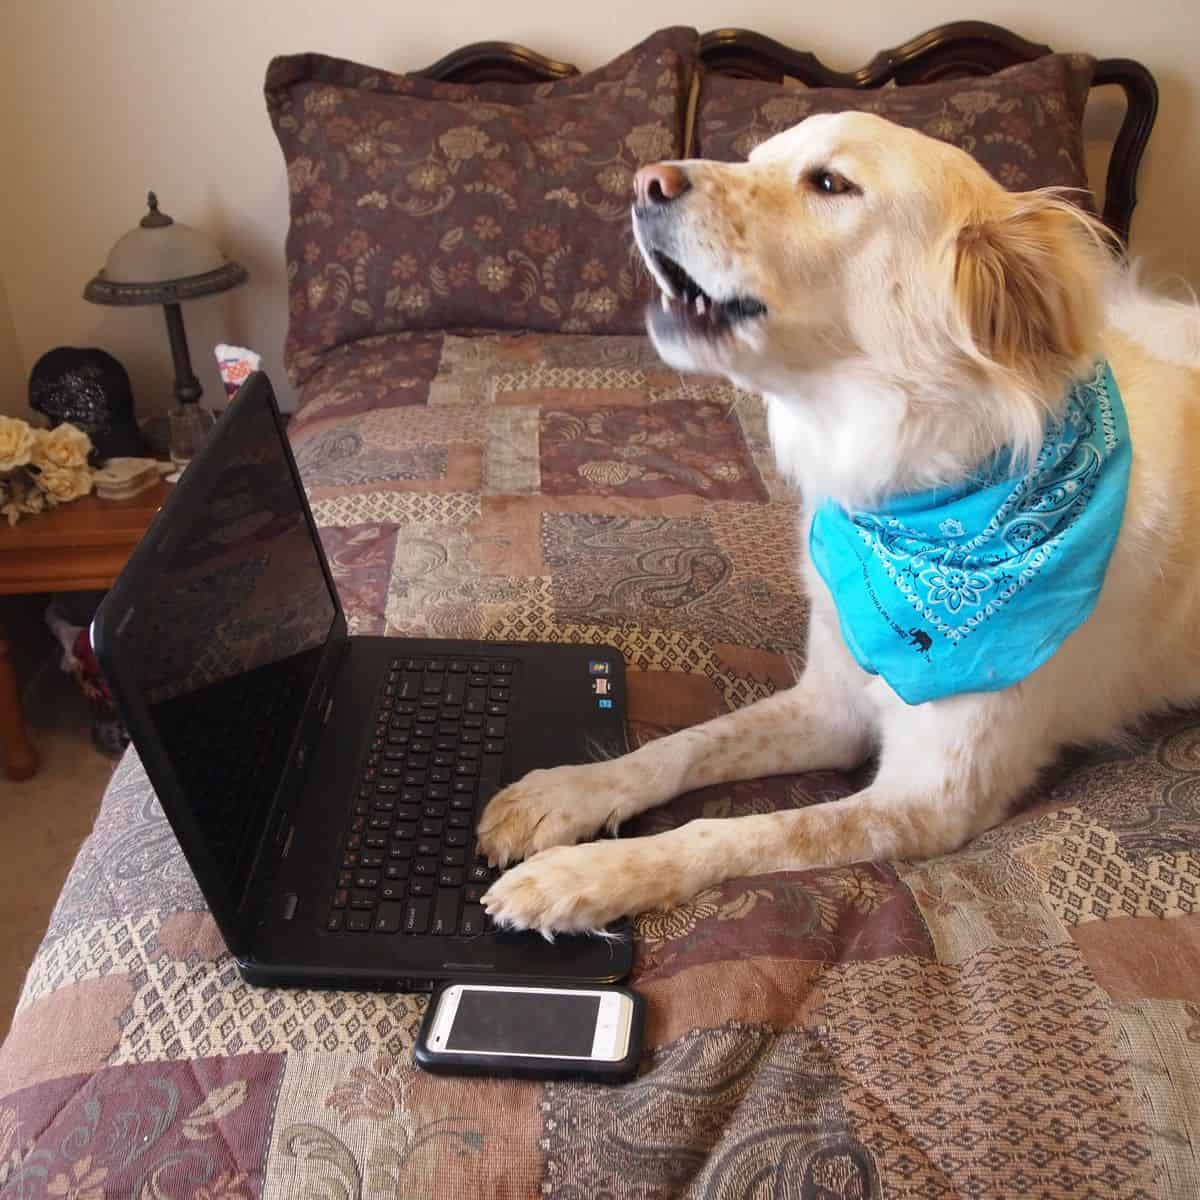 A golden retriever with its paws on the keyboard of a laptop, next to a smartphone. Beta user feedback is an invaluable way to improve your app designs.